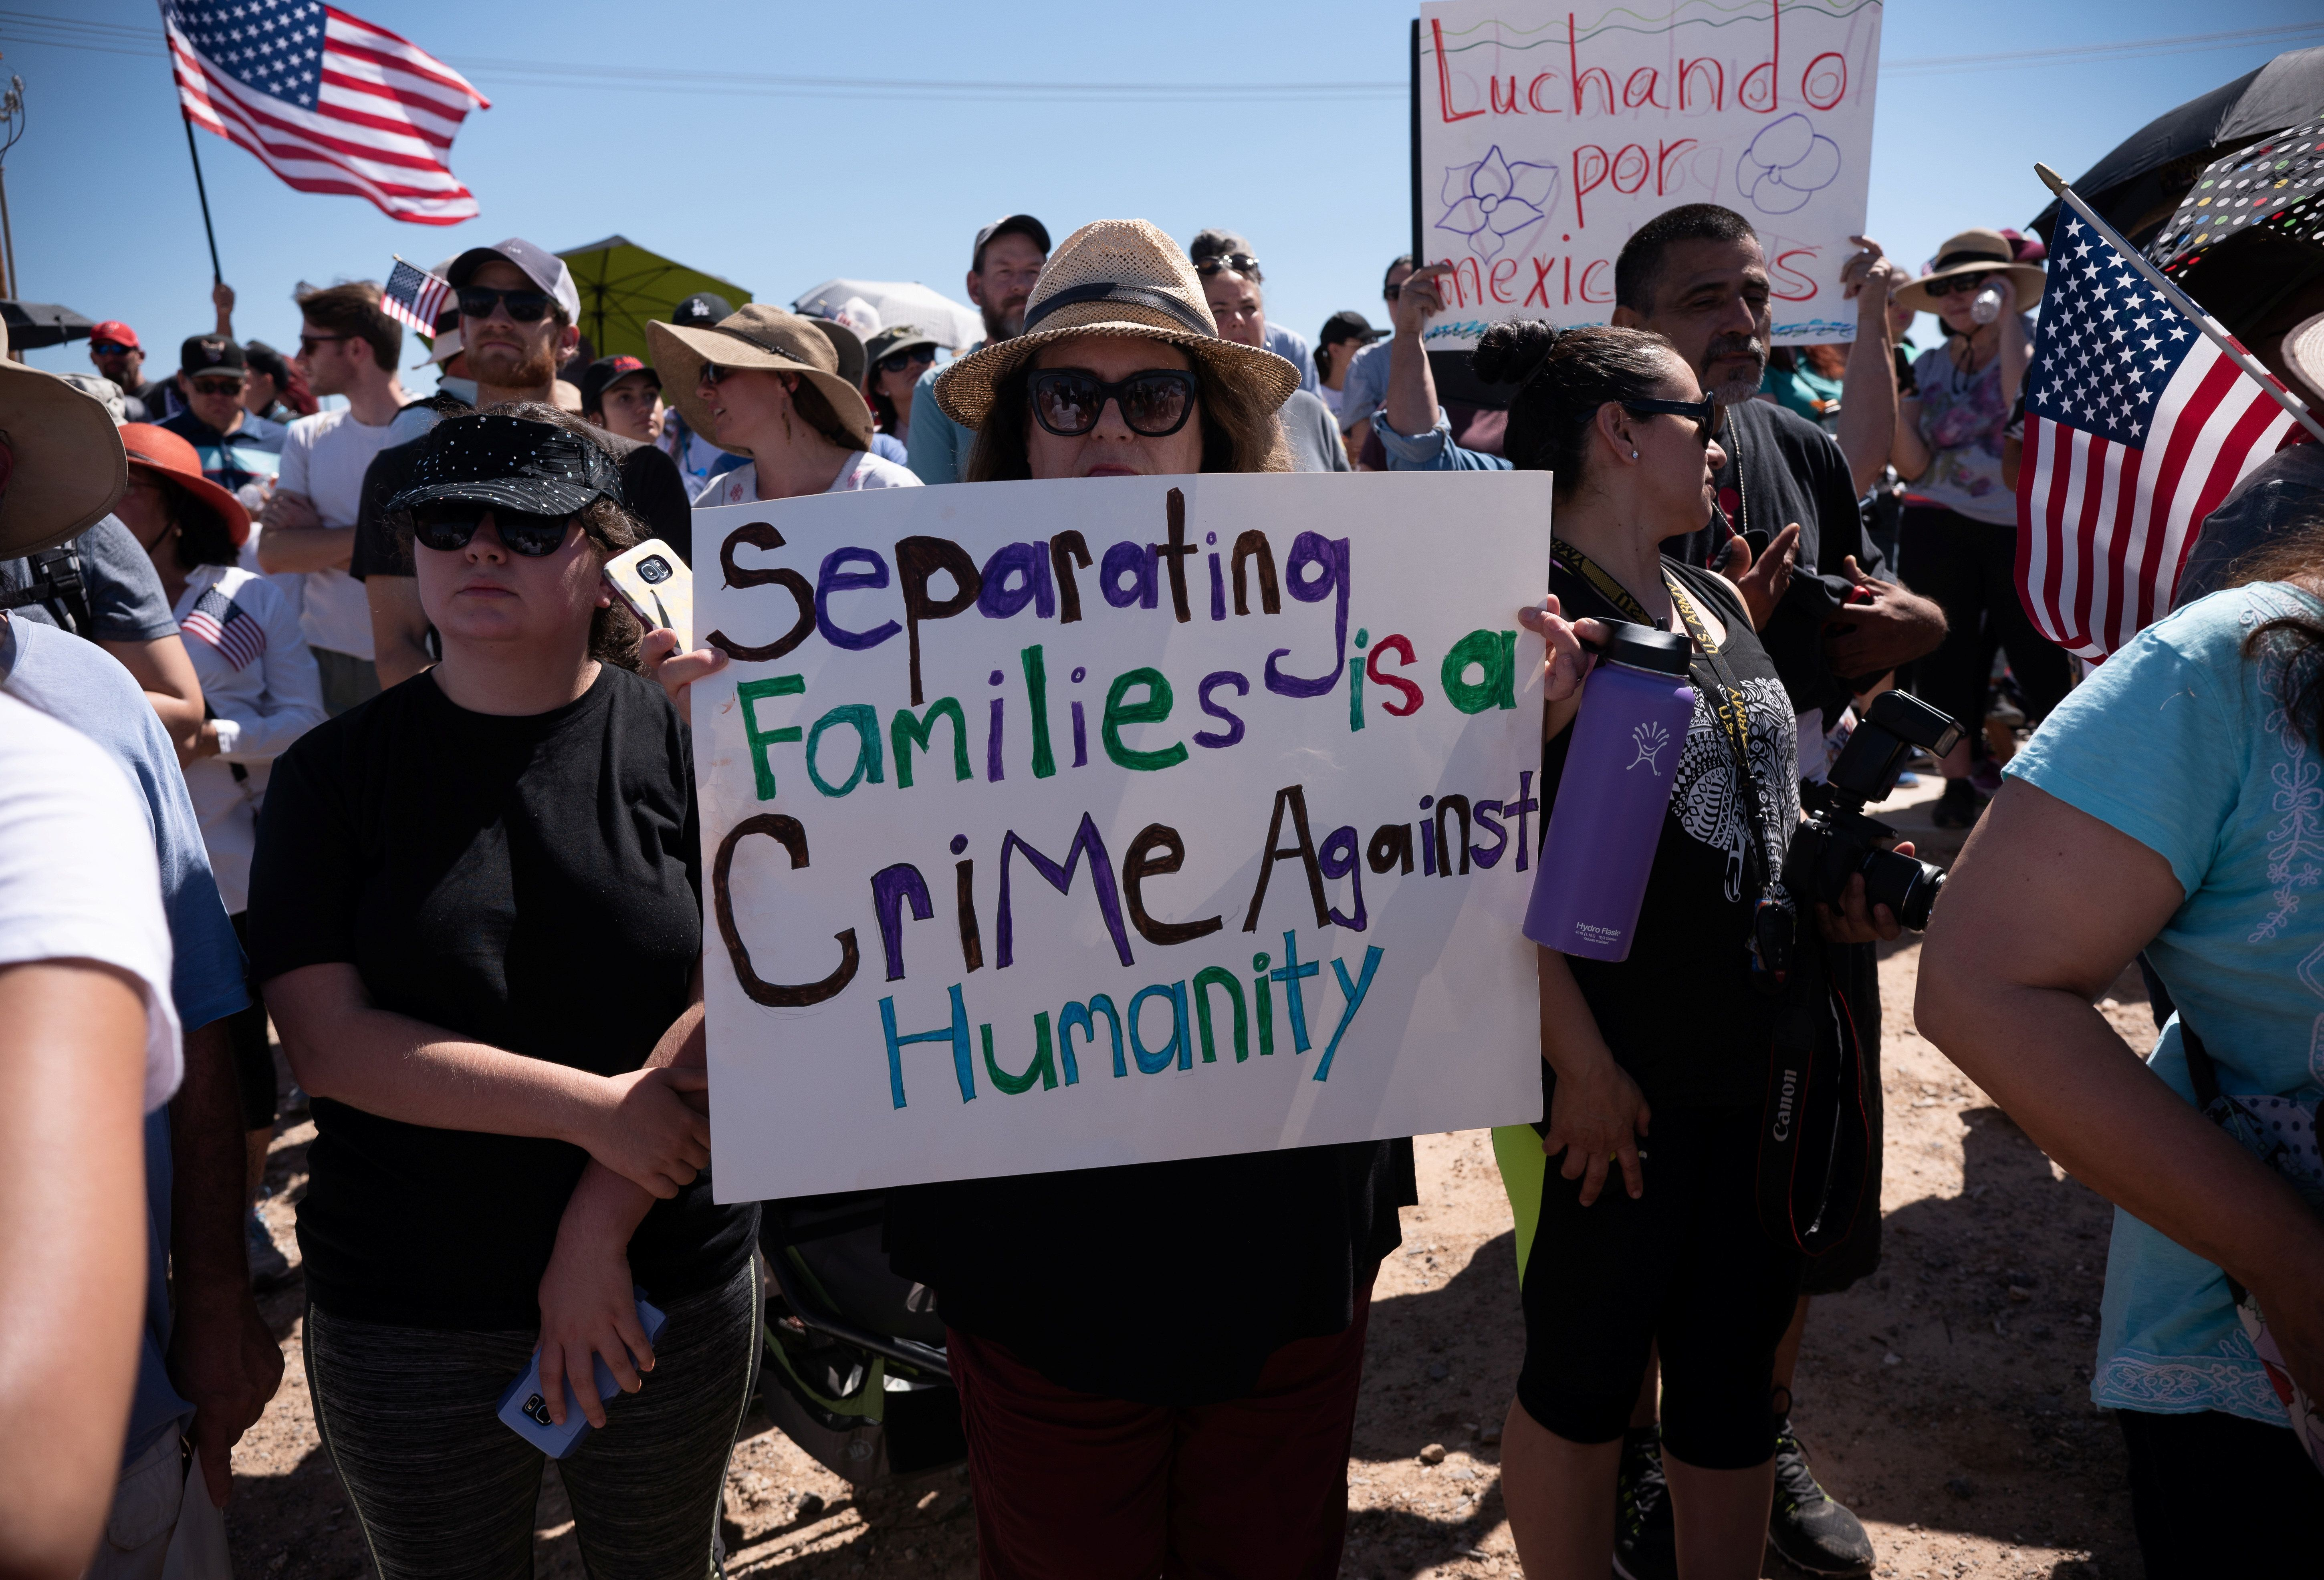 People participate in a protest against a recent U.S. immigration policy of separating children from their families when they enter the United States as undocumented immigrants, outside the Tornillo Tranit Centre, in Tornillo, Texas, U.S. June 17, 2018. REUTERS/Monica Lozano